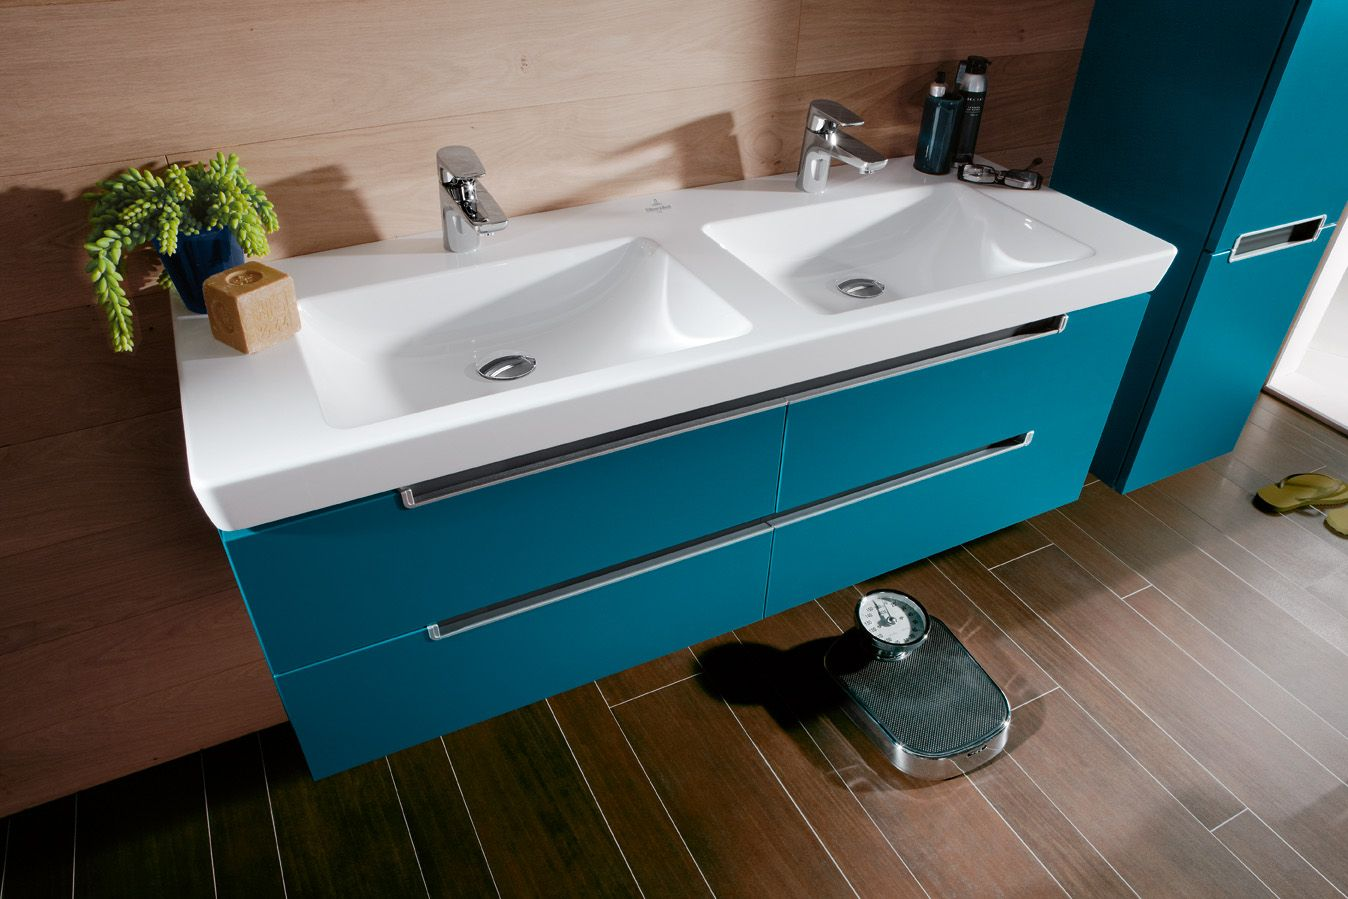 Doppelwaschtisch Villeroy Boch Subway 2.0 Villeroy Boch Petrol Blue Subway Vanity Bathroom Colour